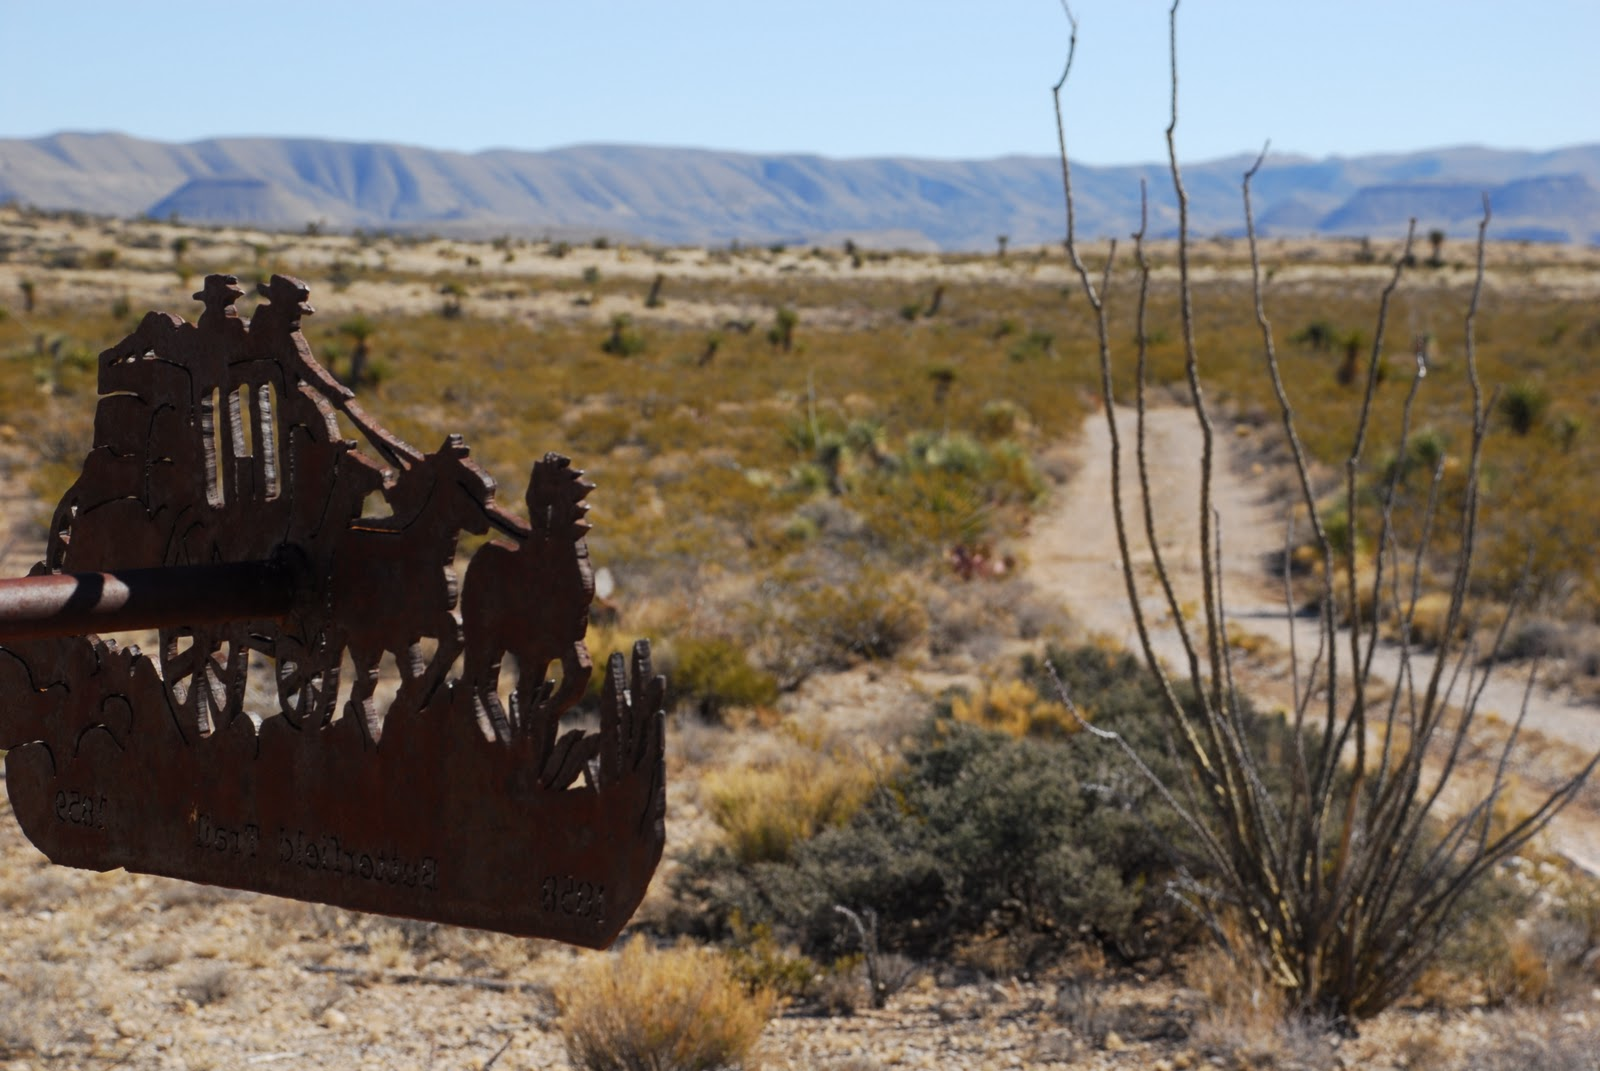 Guadalupe Mountains National Park was the site of the historic first meeting of eastern-bound and western-bound Butterfield Overland stagecoach delivering the mail cross-country in 1859. This photo was taken near that spot on the Williams Ranch Road in the western stretch of the park.